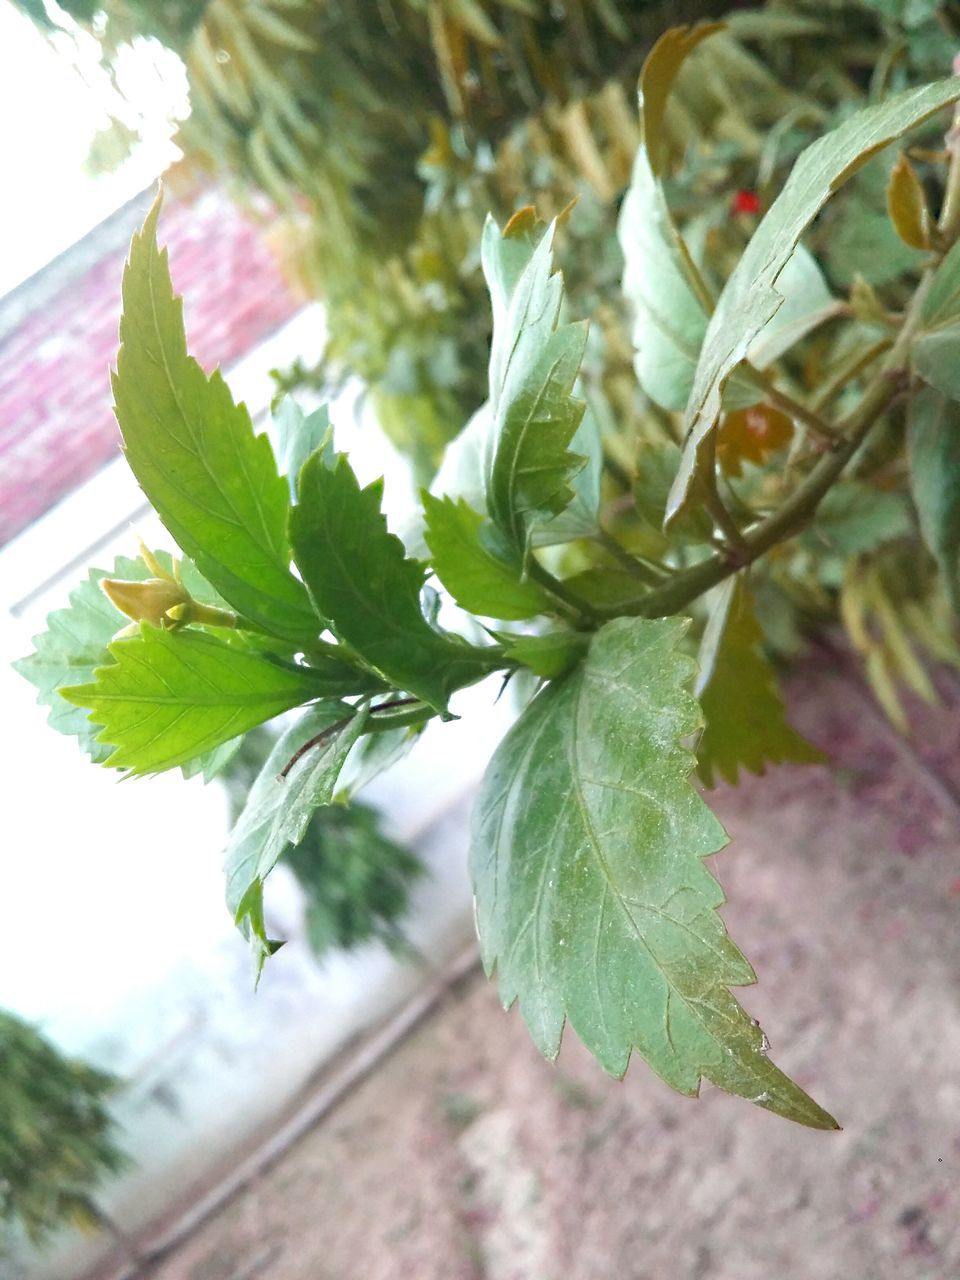 leaf, green color, growth, plant, nature, no people, close-up, day, outdoors, freshness, tree, beauty in nature